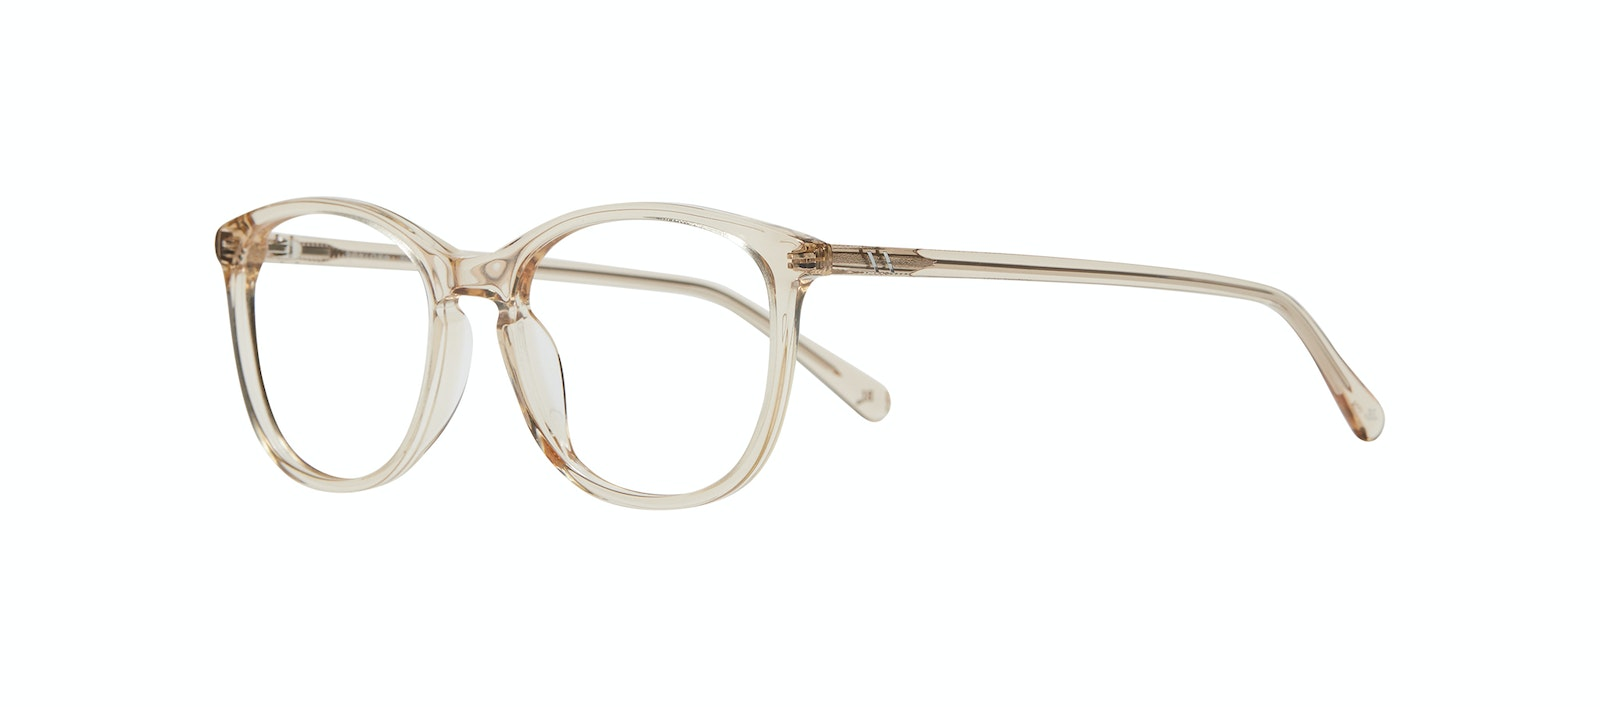 Affordable Fashion Glasses Rectangle Square Round Eyeglasses Women Nadine S Prosecco Tilt